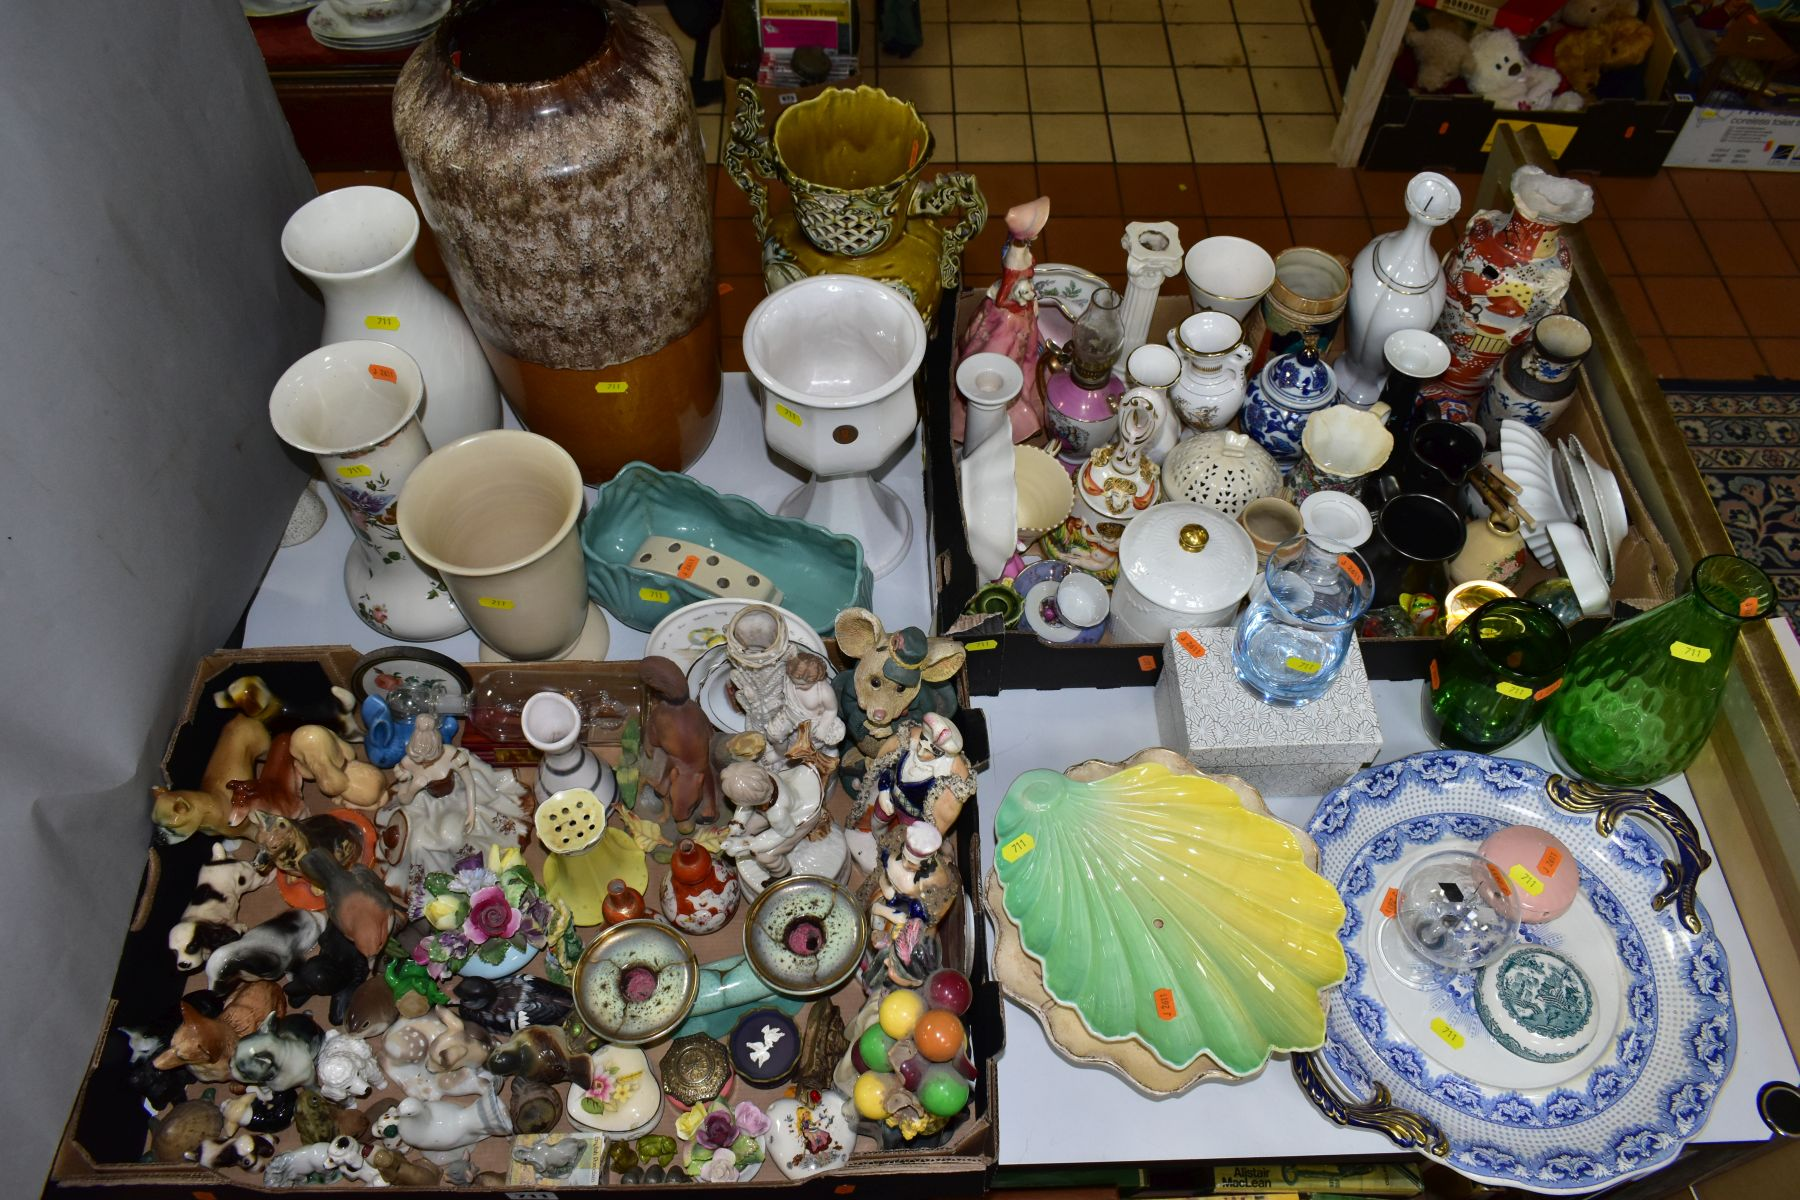 TWO BOXES AND LOOSE CERAMICS AND GLASSWARE, including animal bird and figural ornaments, two